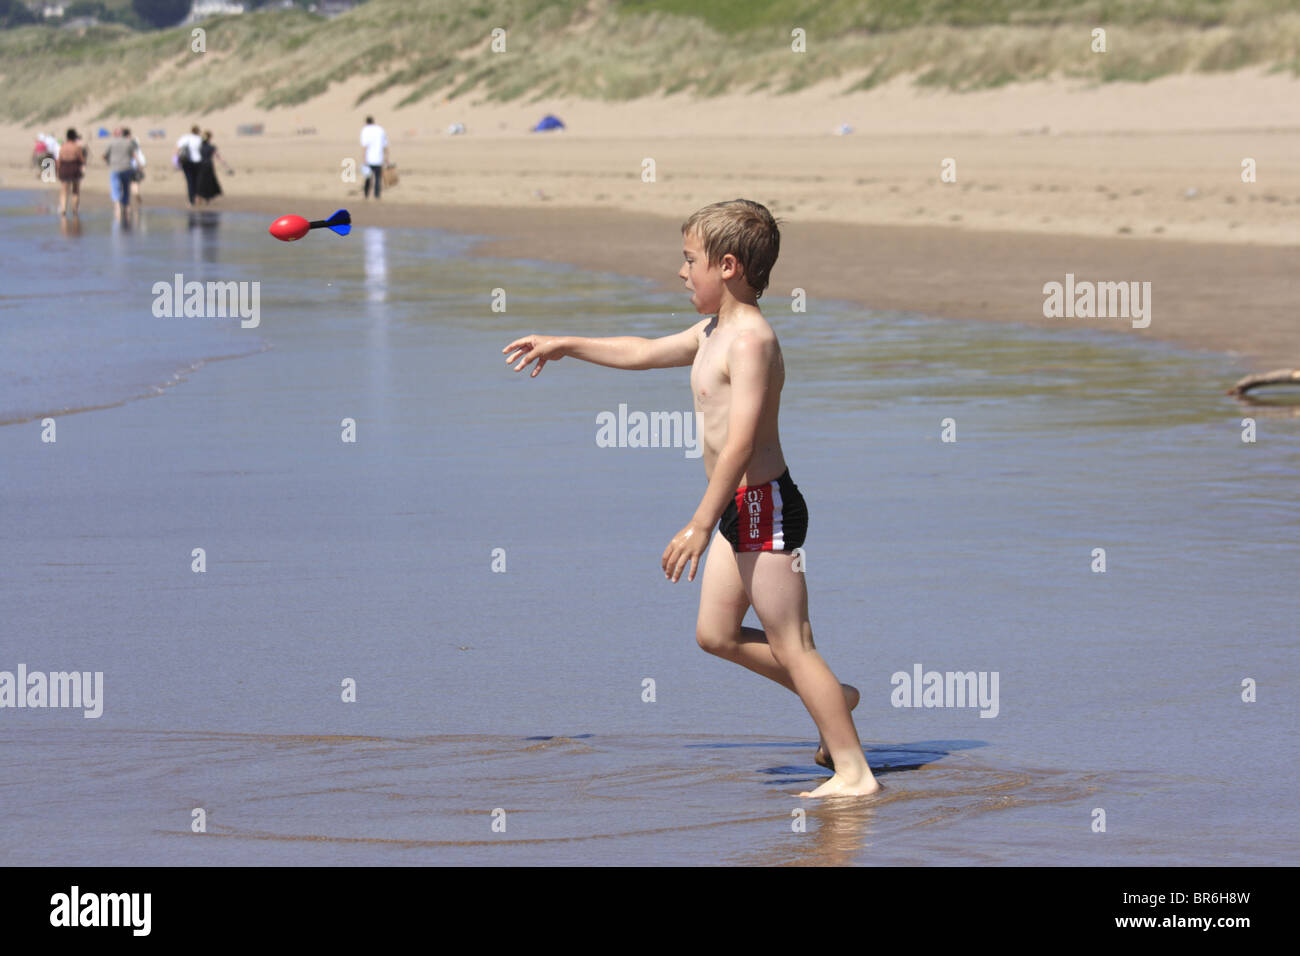 Boy standing in shallow water and throwing a nerf ball on a beach in Woolacombe North Devon UK Stock Photo